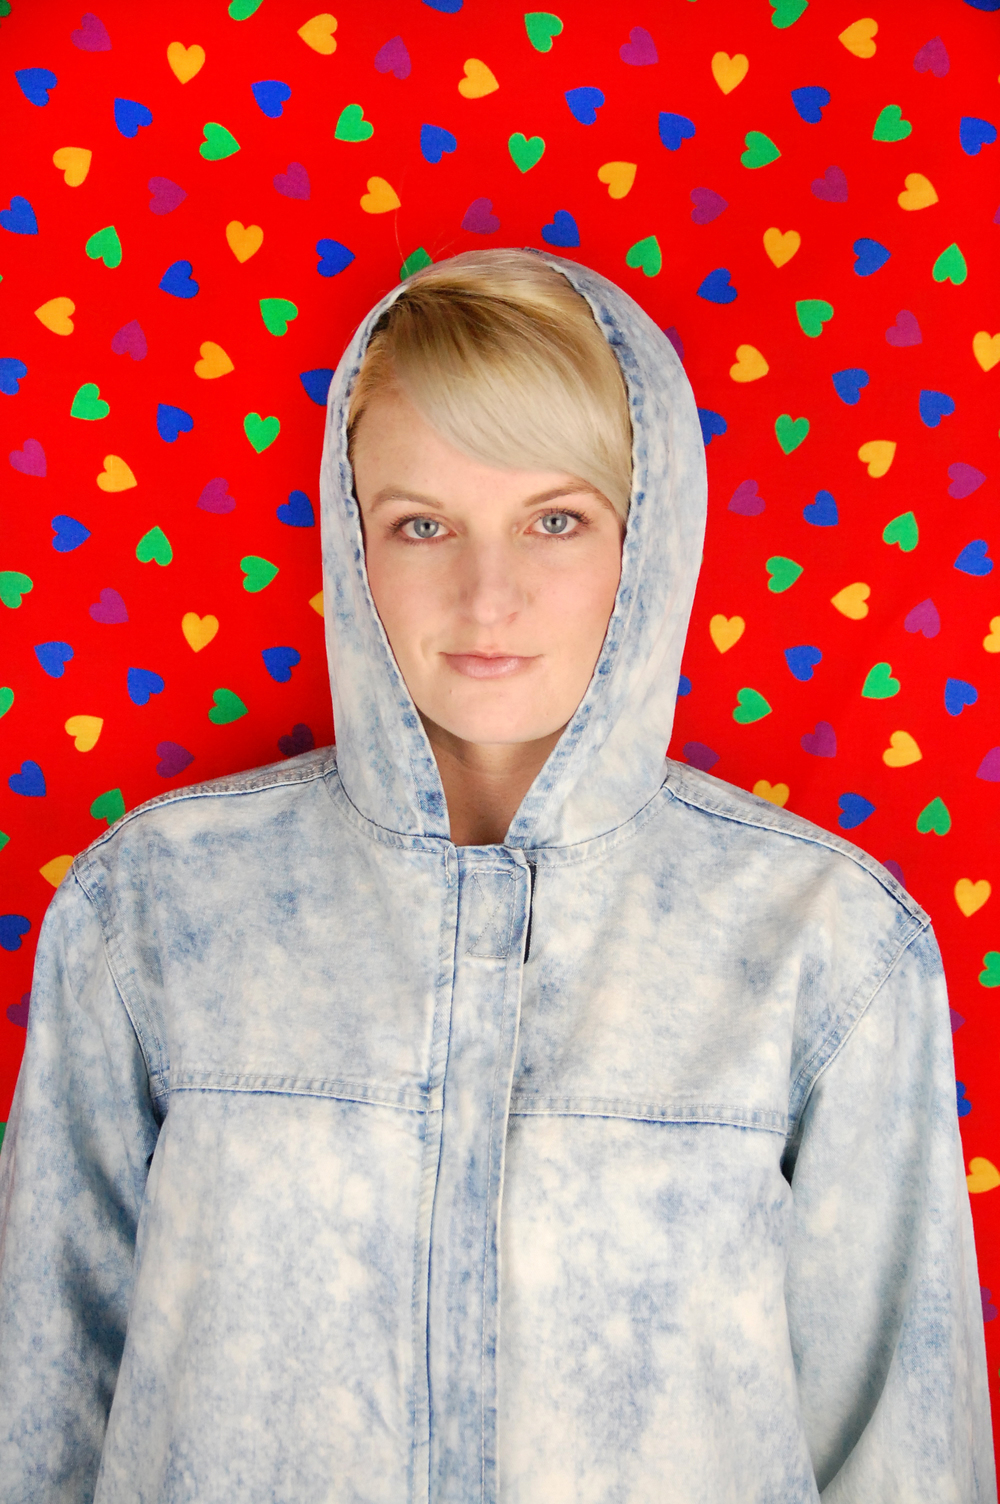 Denim Hood Hearts.jpg